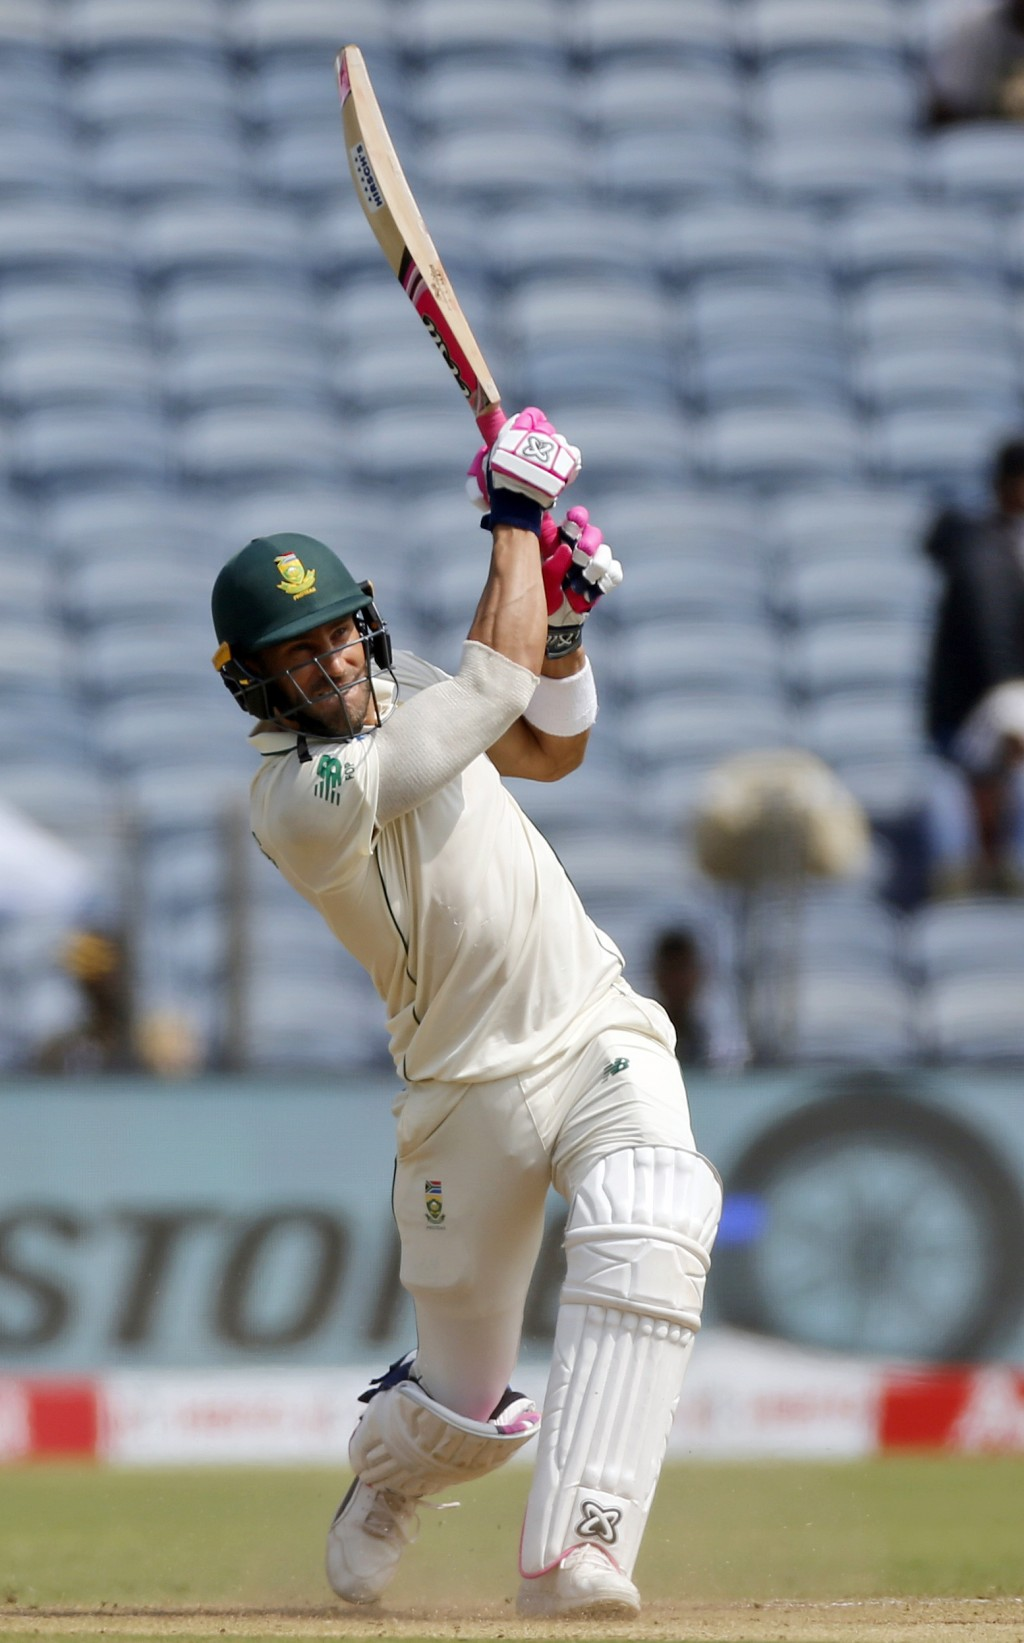 South African cricketer Faf du Plessis bats during the third day of the second cricket test match between India and South Africa in Pune, India, Satur